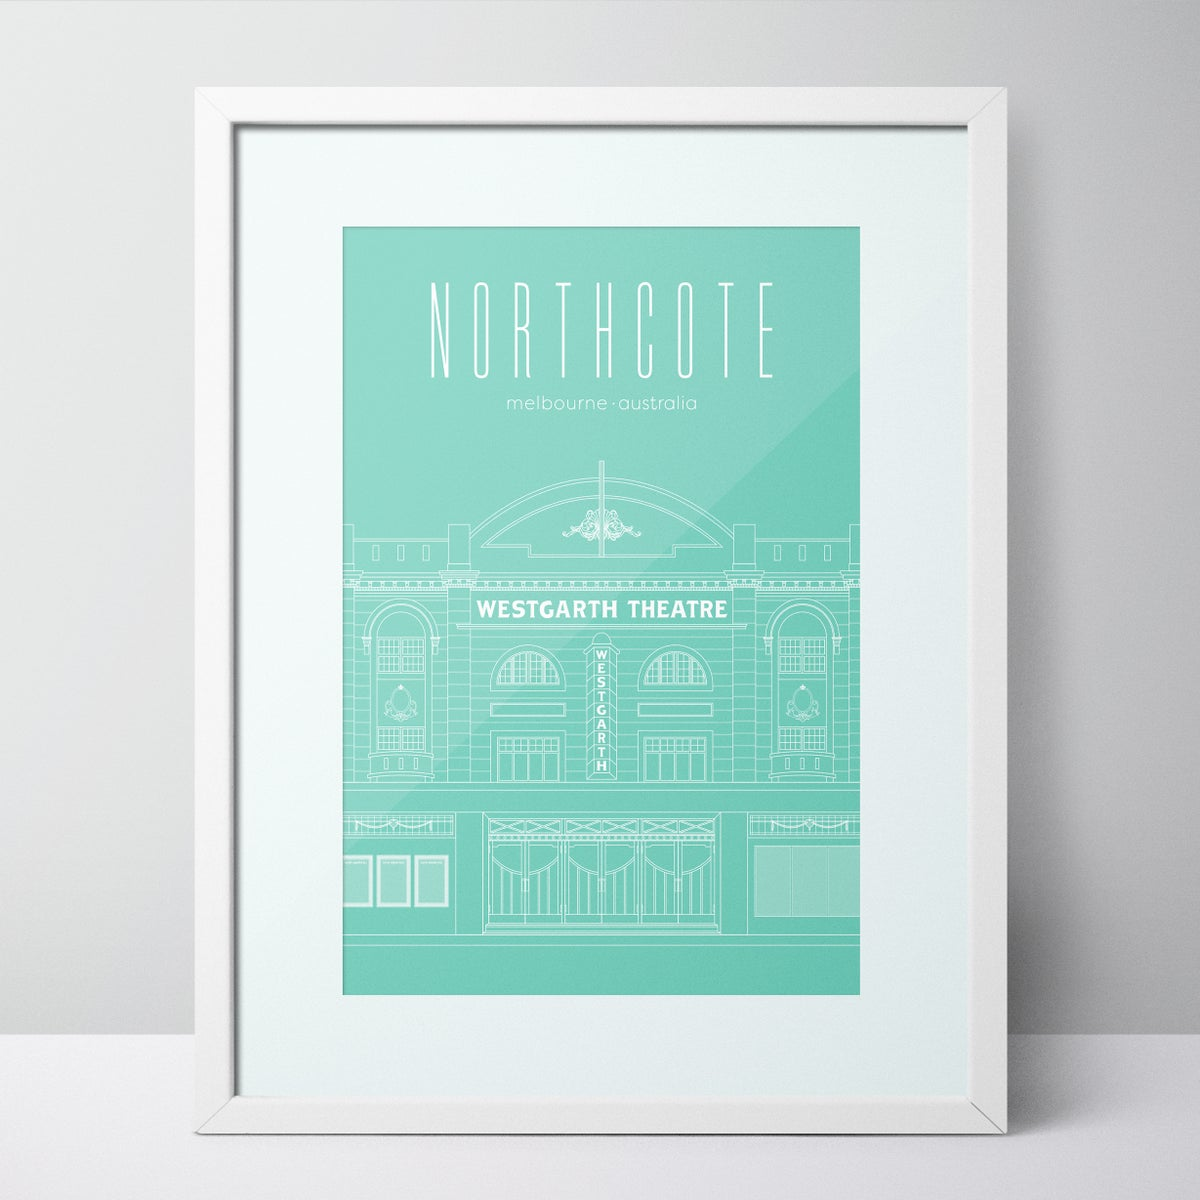 Image of Westgarth Theatre - Northcote